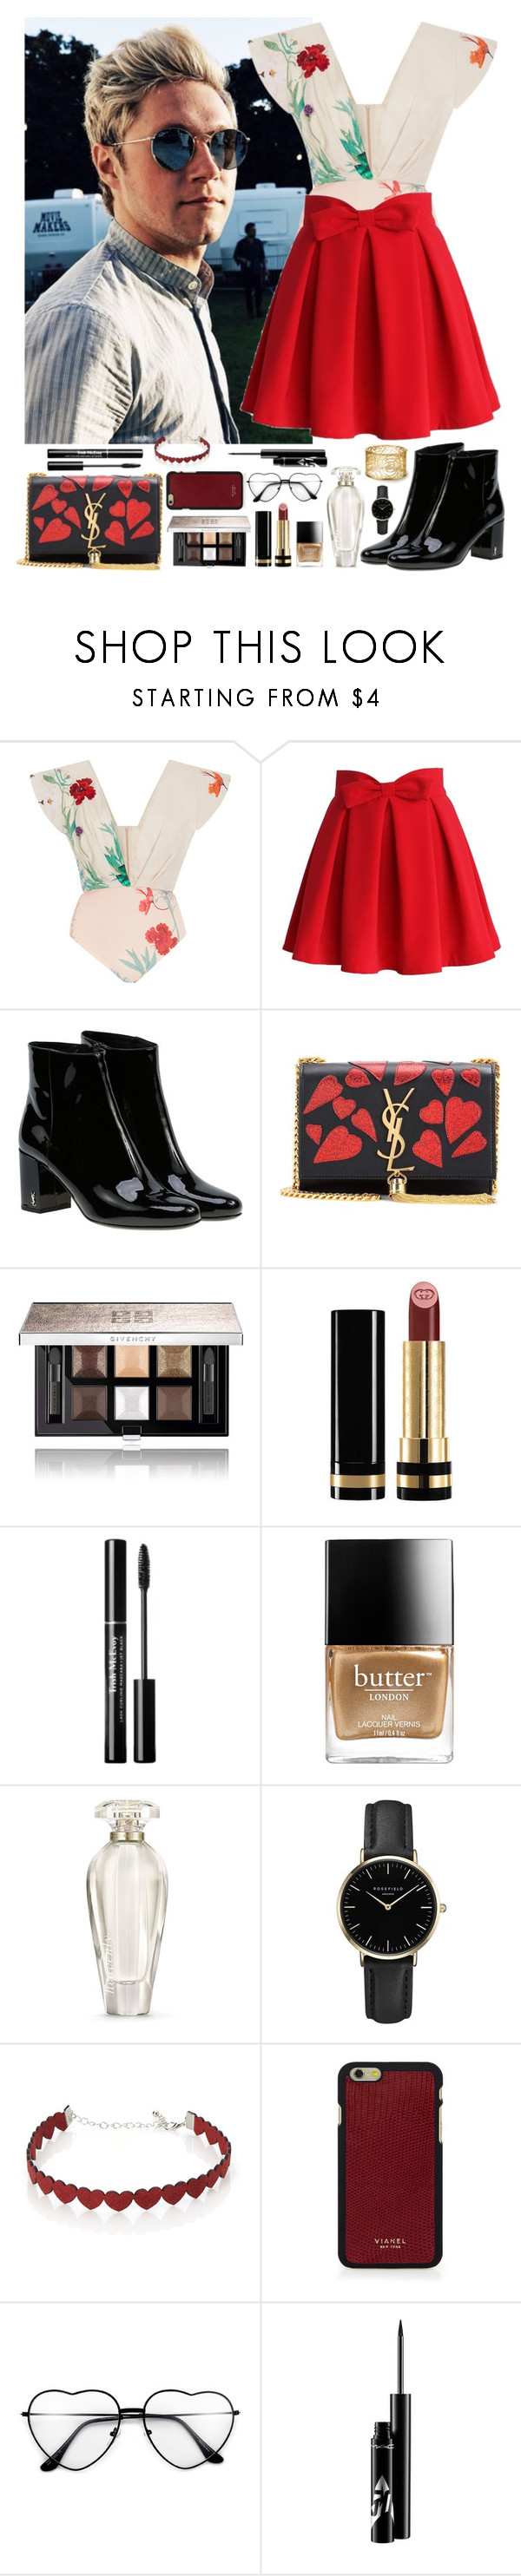 """Niall Horan #105"" by ambere3love34 ❤ liked on Polyvore featuring beauty, Johanna Ortiz, Chicwish, Yves Saint Laurent, Givenchy, Gucci, Butter London, Victoria's Secret, ROSEFIELD and Simons"